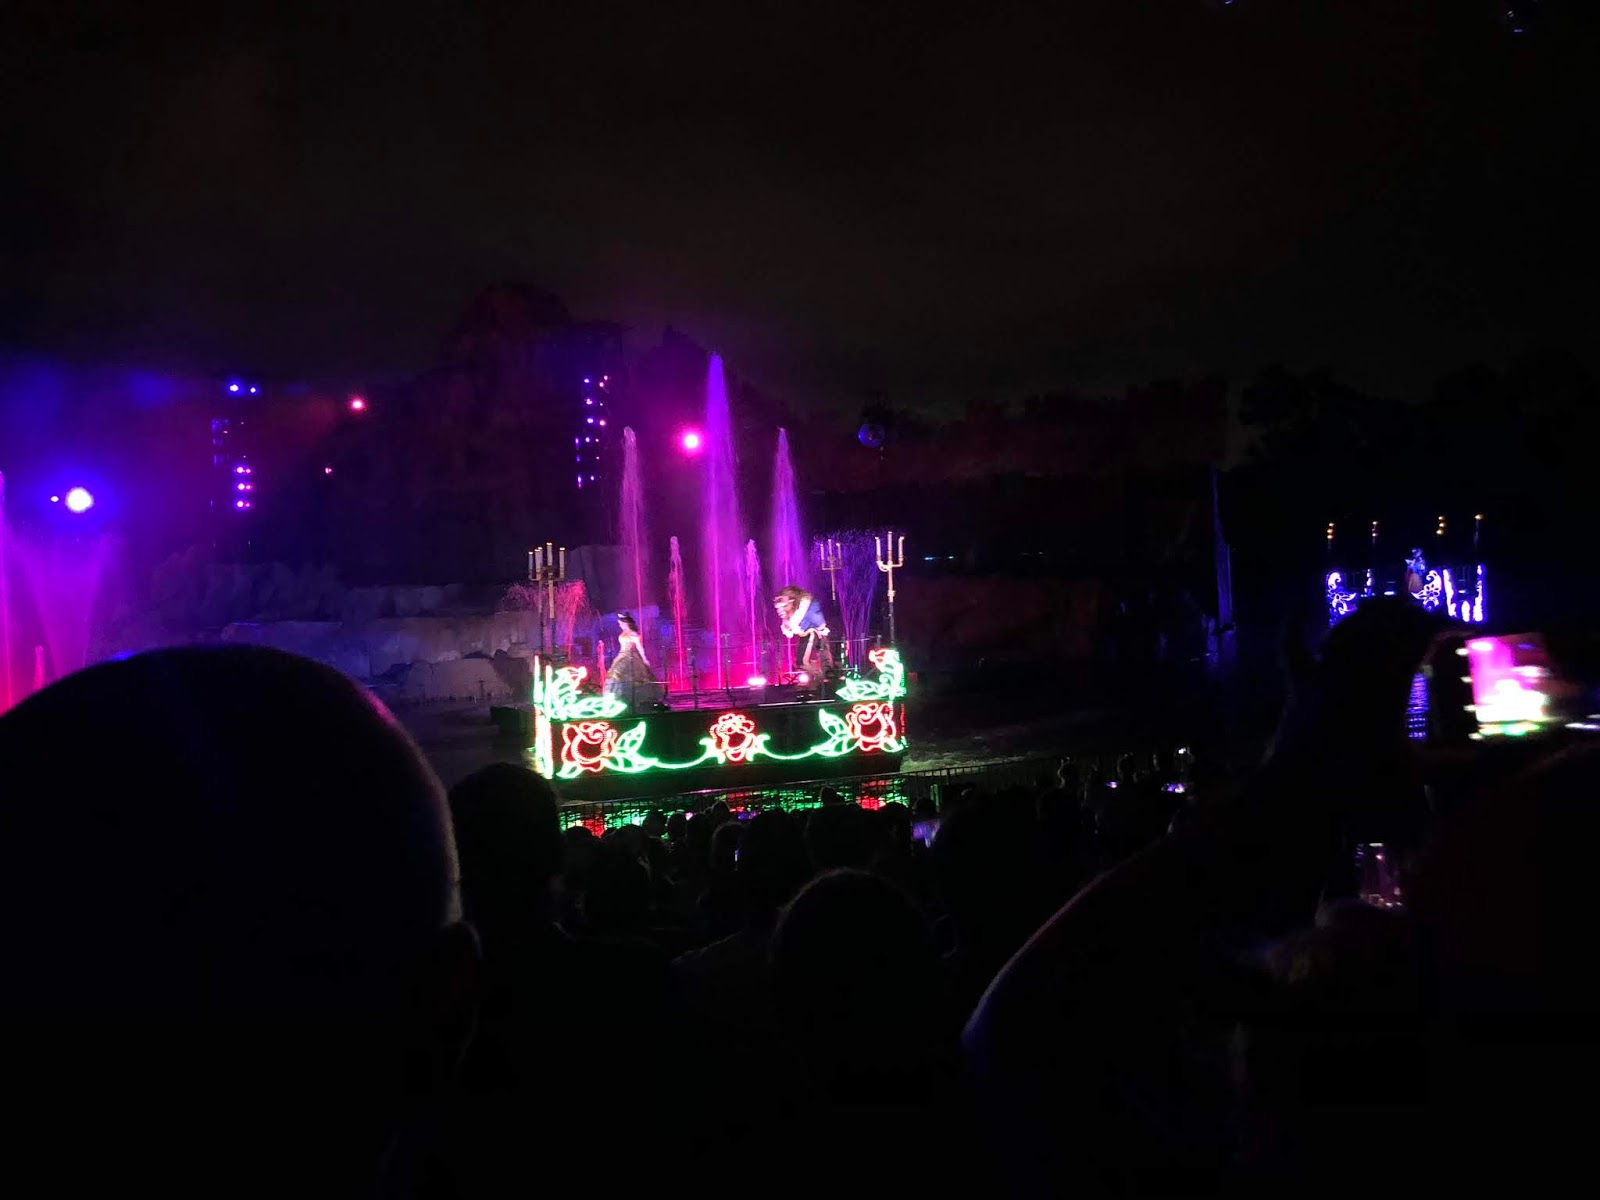 Stephanie Kamp Blog: Disney August 2018